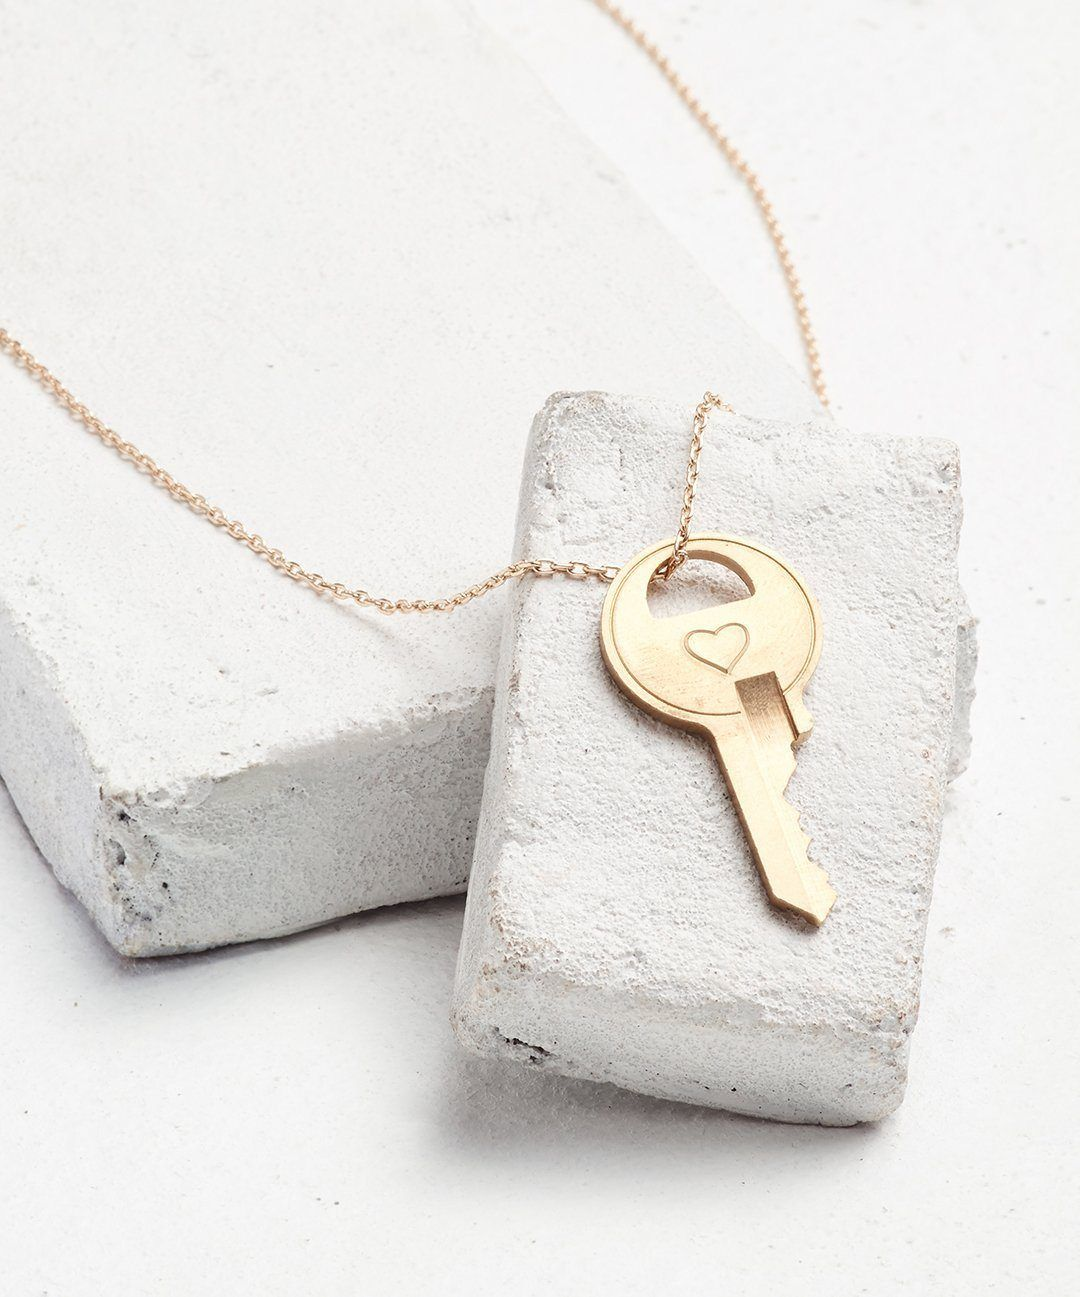 Symbol Dainty Key Necklace Necklaces The Giving Keys HEART Dainty Gold